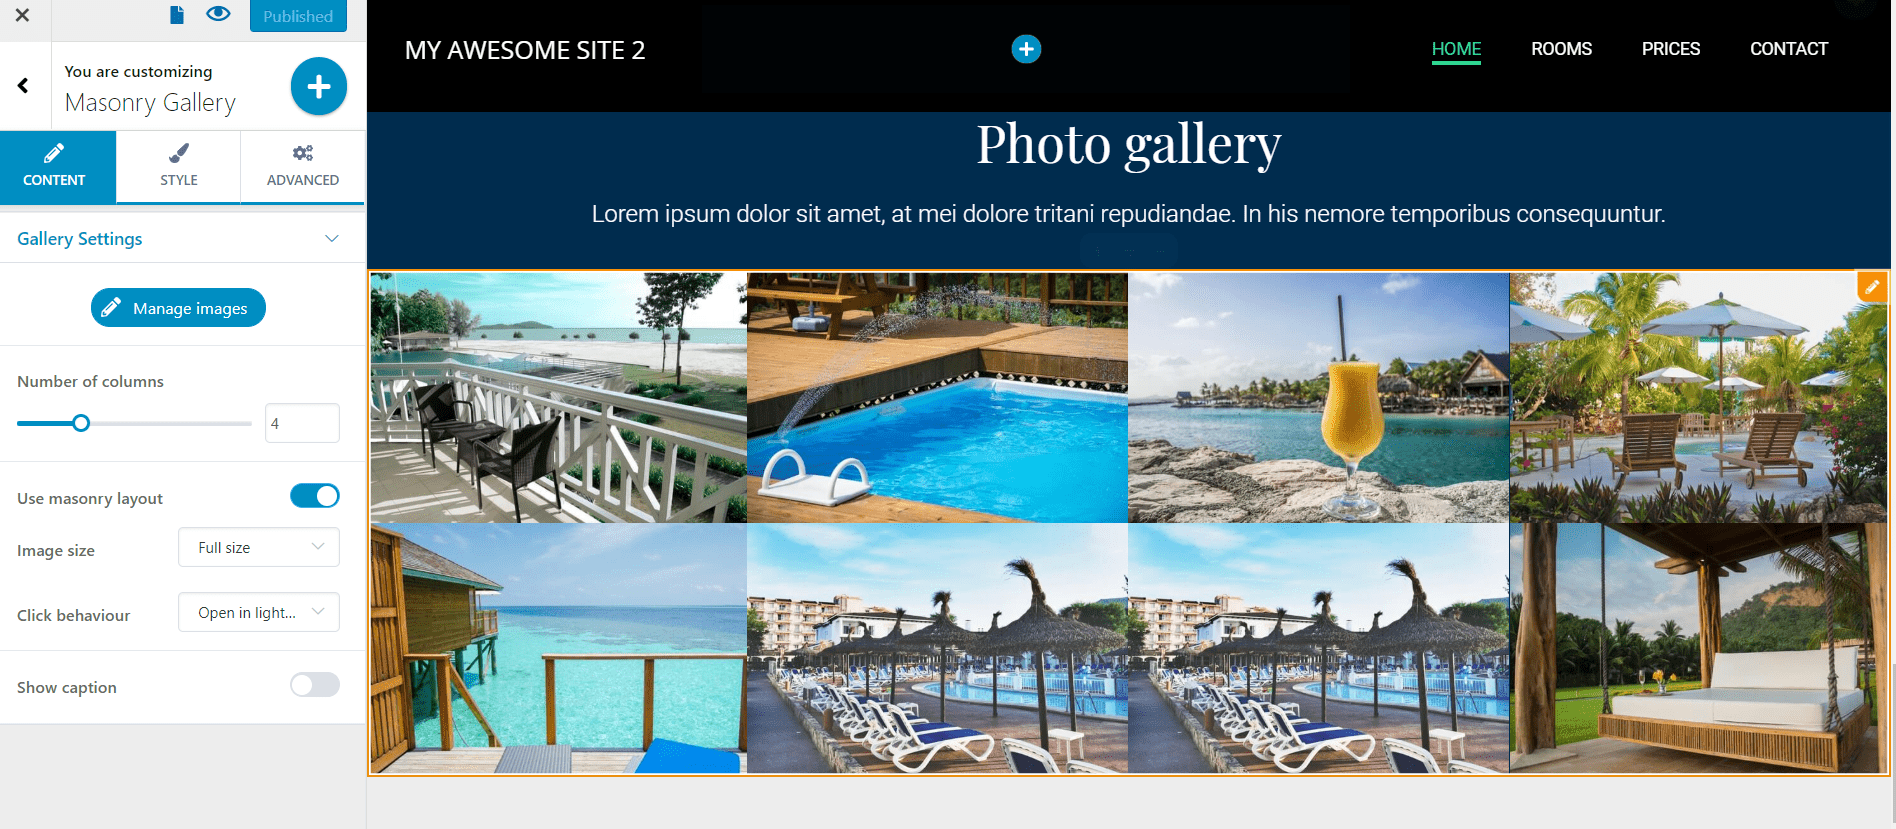 Photo gallery for resorts website